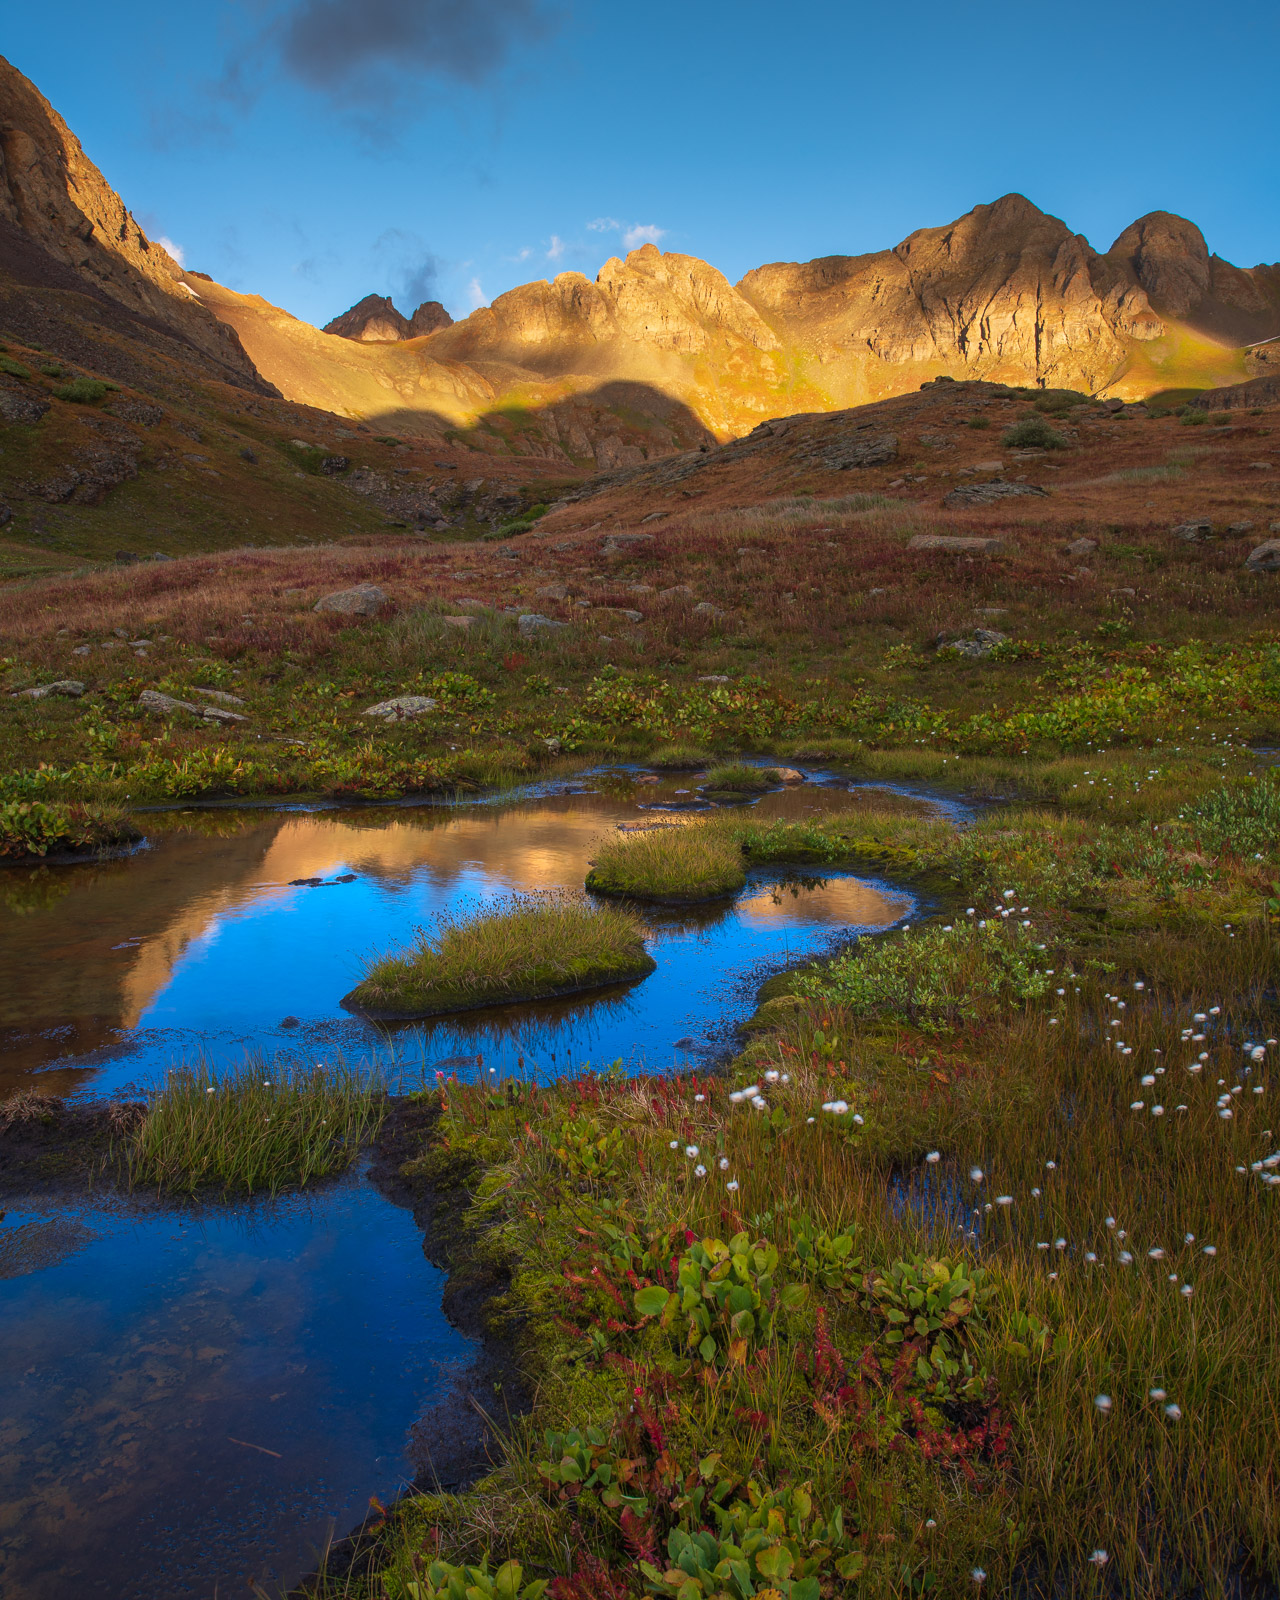 Alpine tundra and reflections of massive rocky peaks in Clear Lake Basin, Colorado.